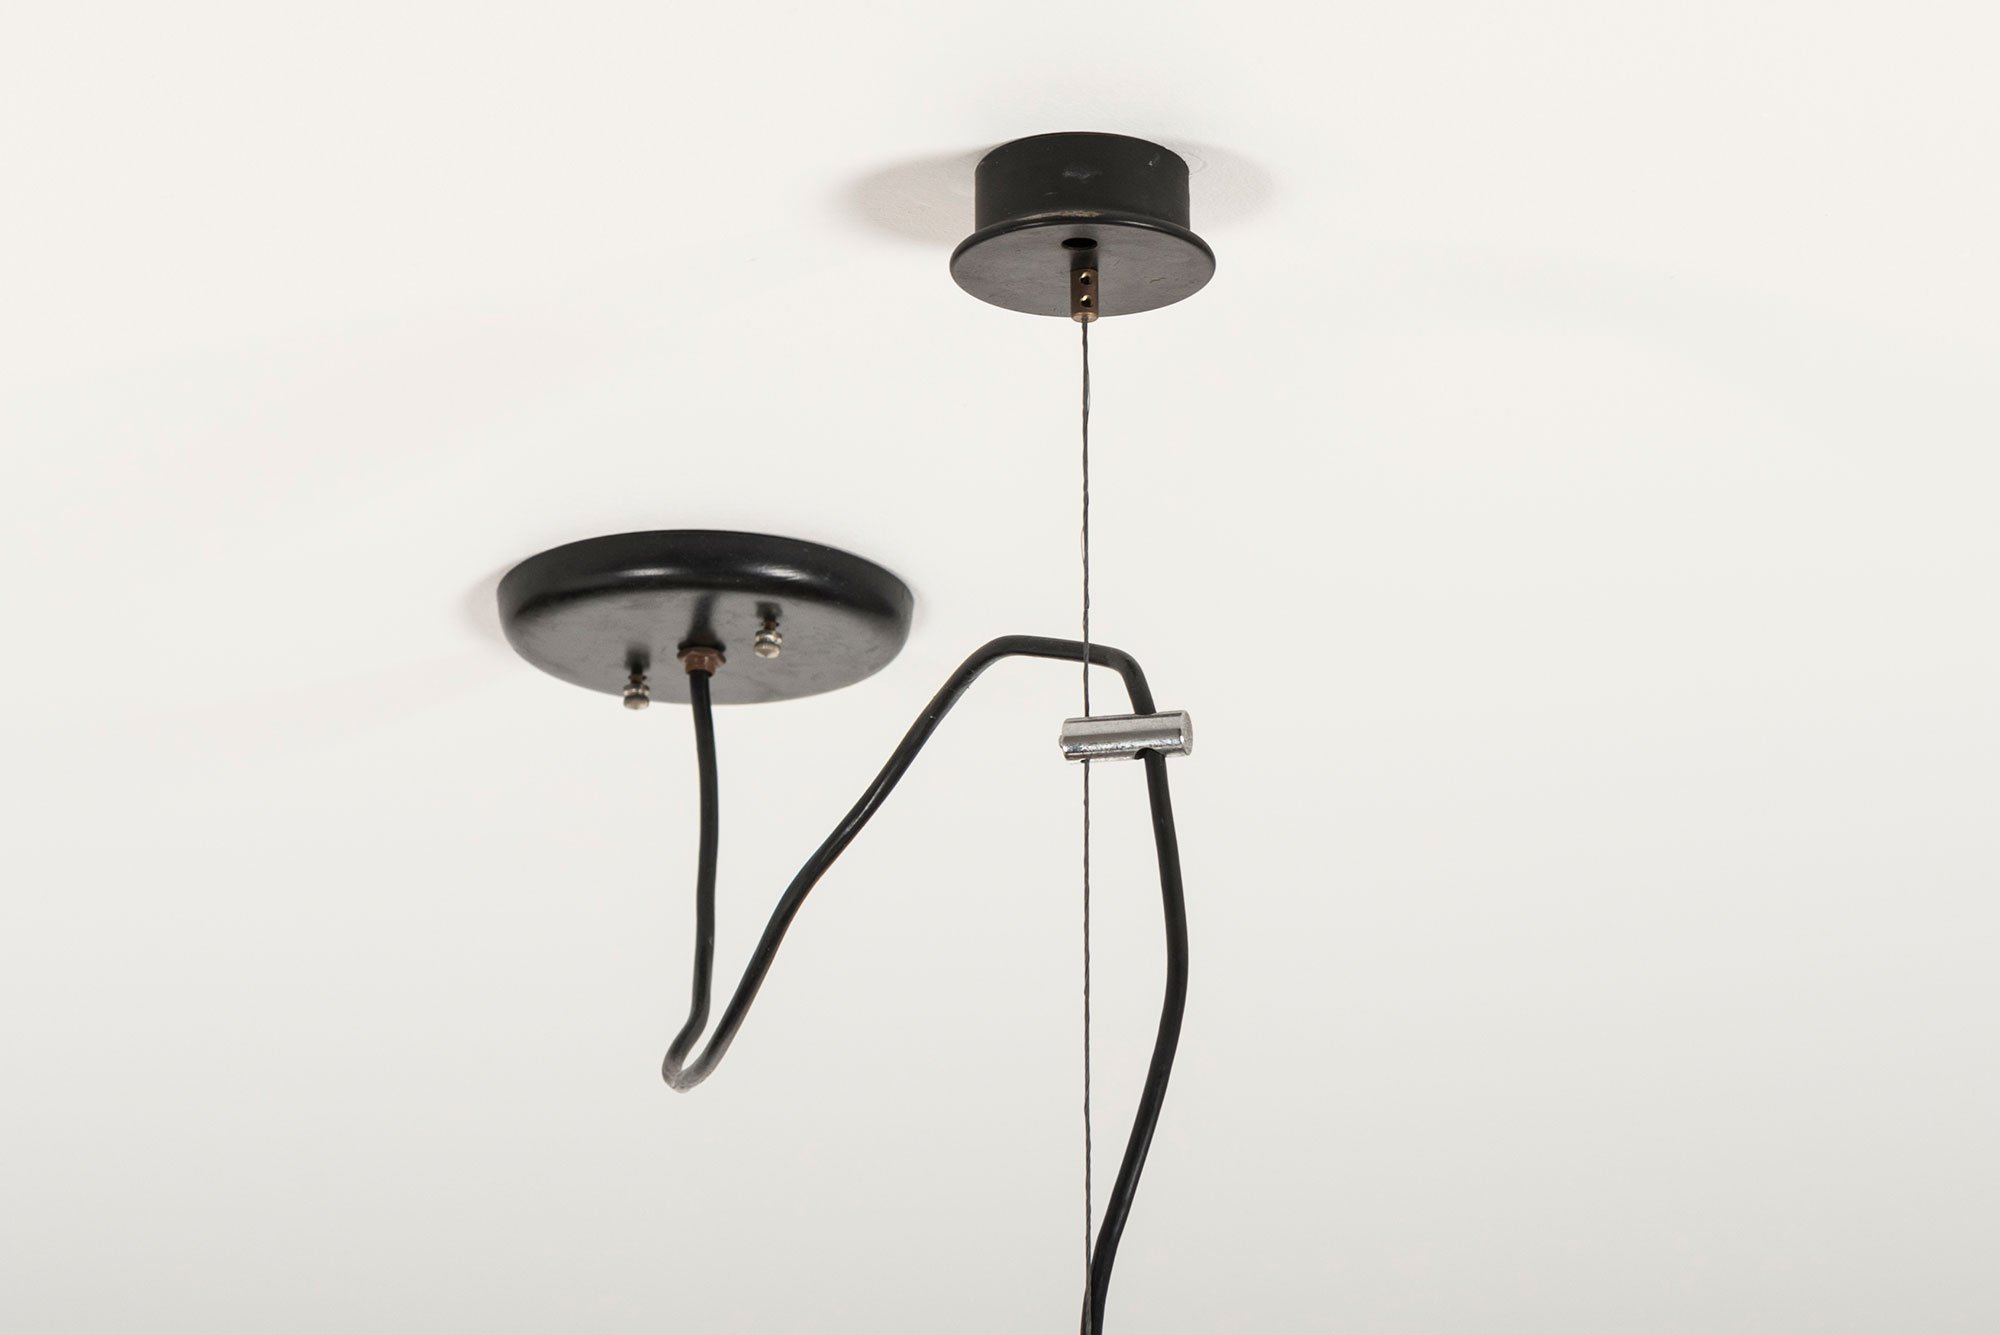 Gino Sarfatti |  Chandelier model 2097